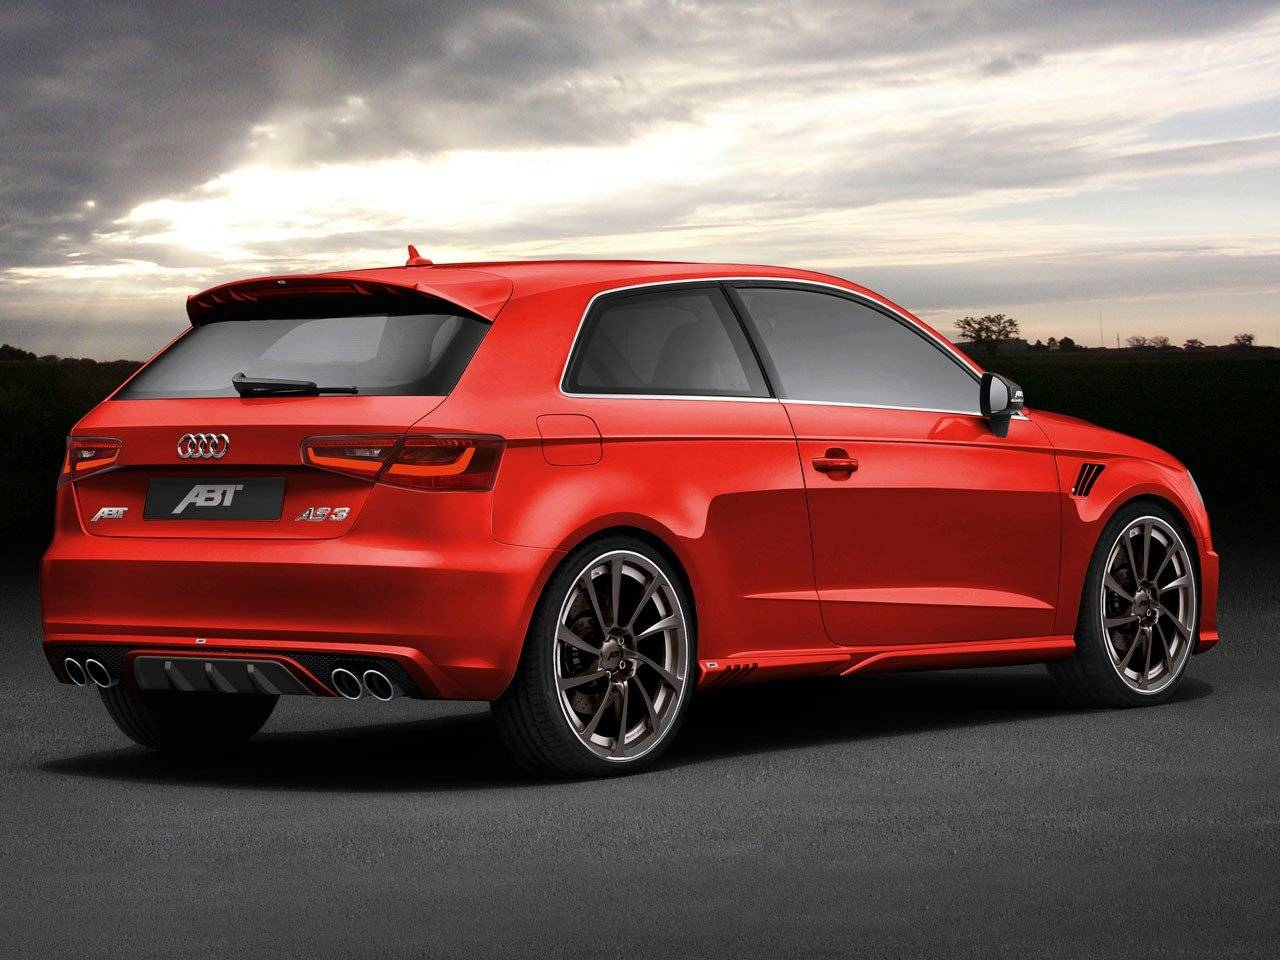 Abt Getunede Audi A3 Valt S3 Aan Tuning Amp Styling